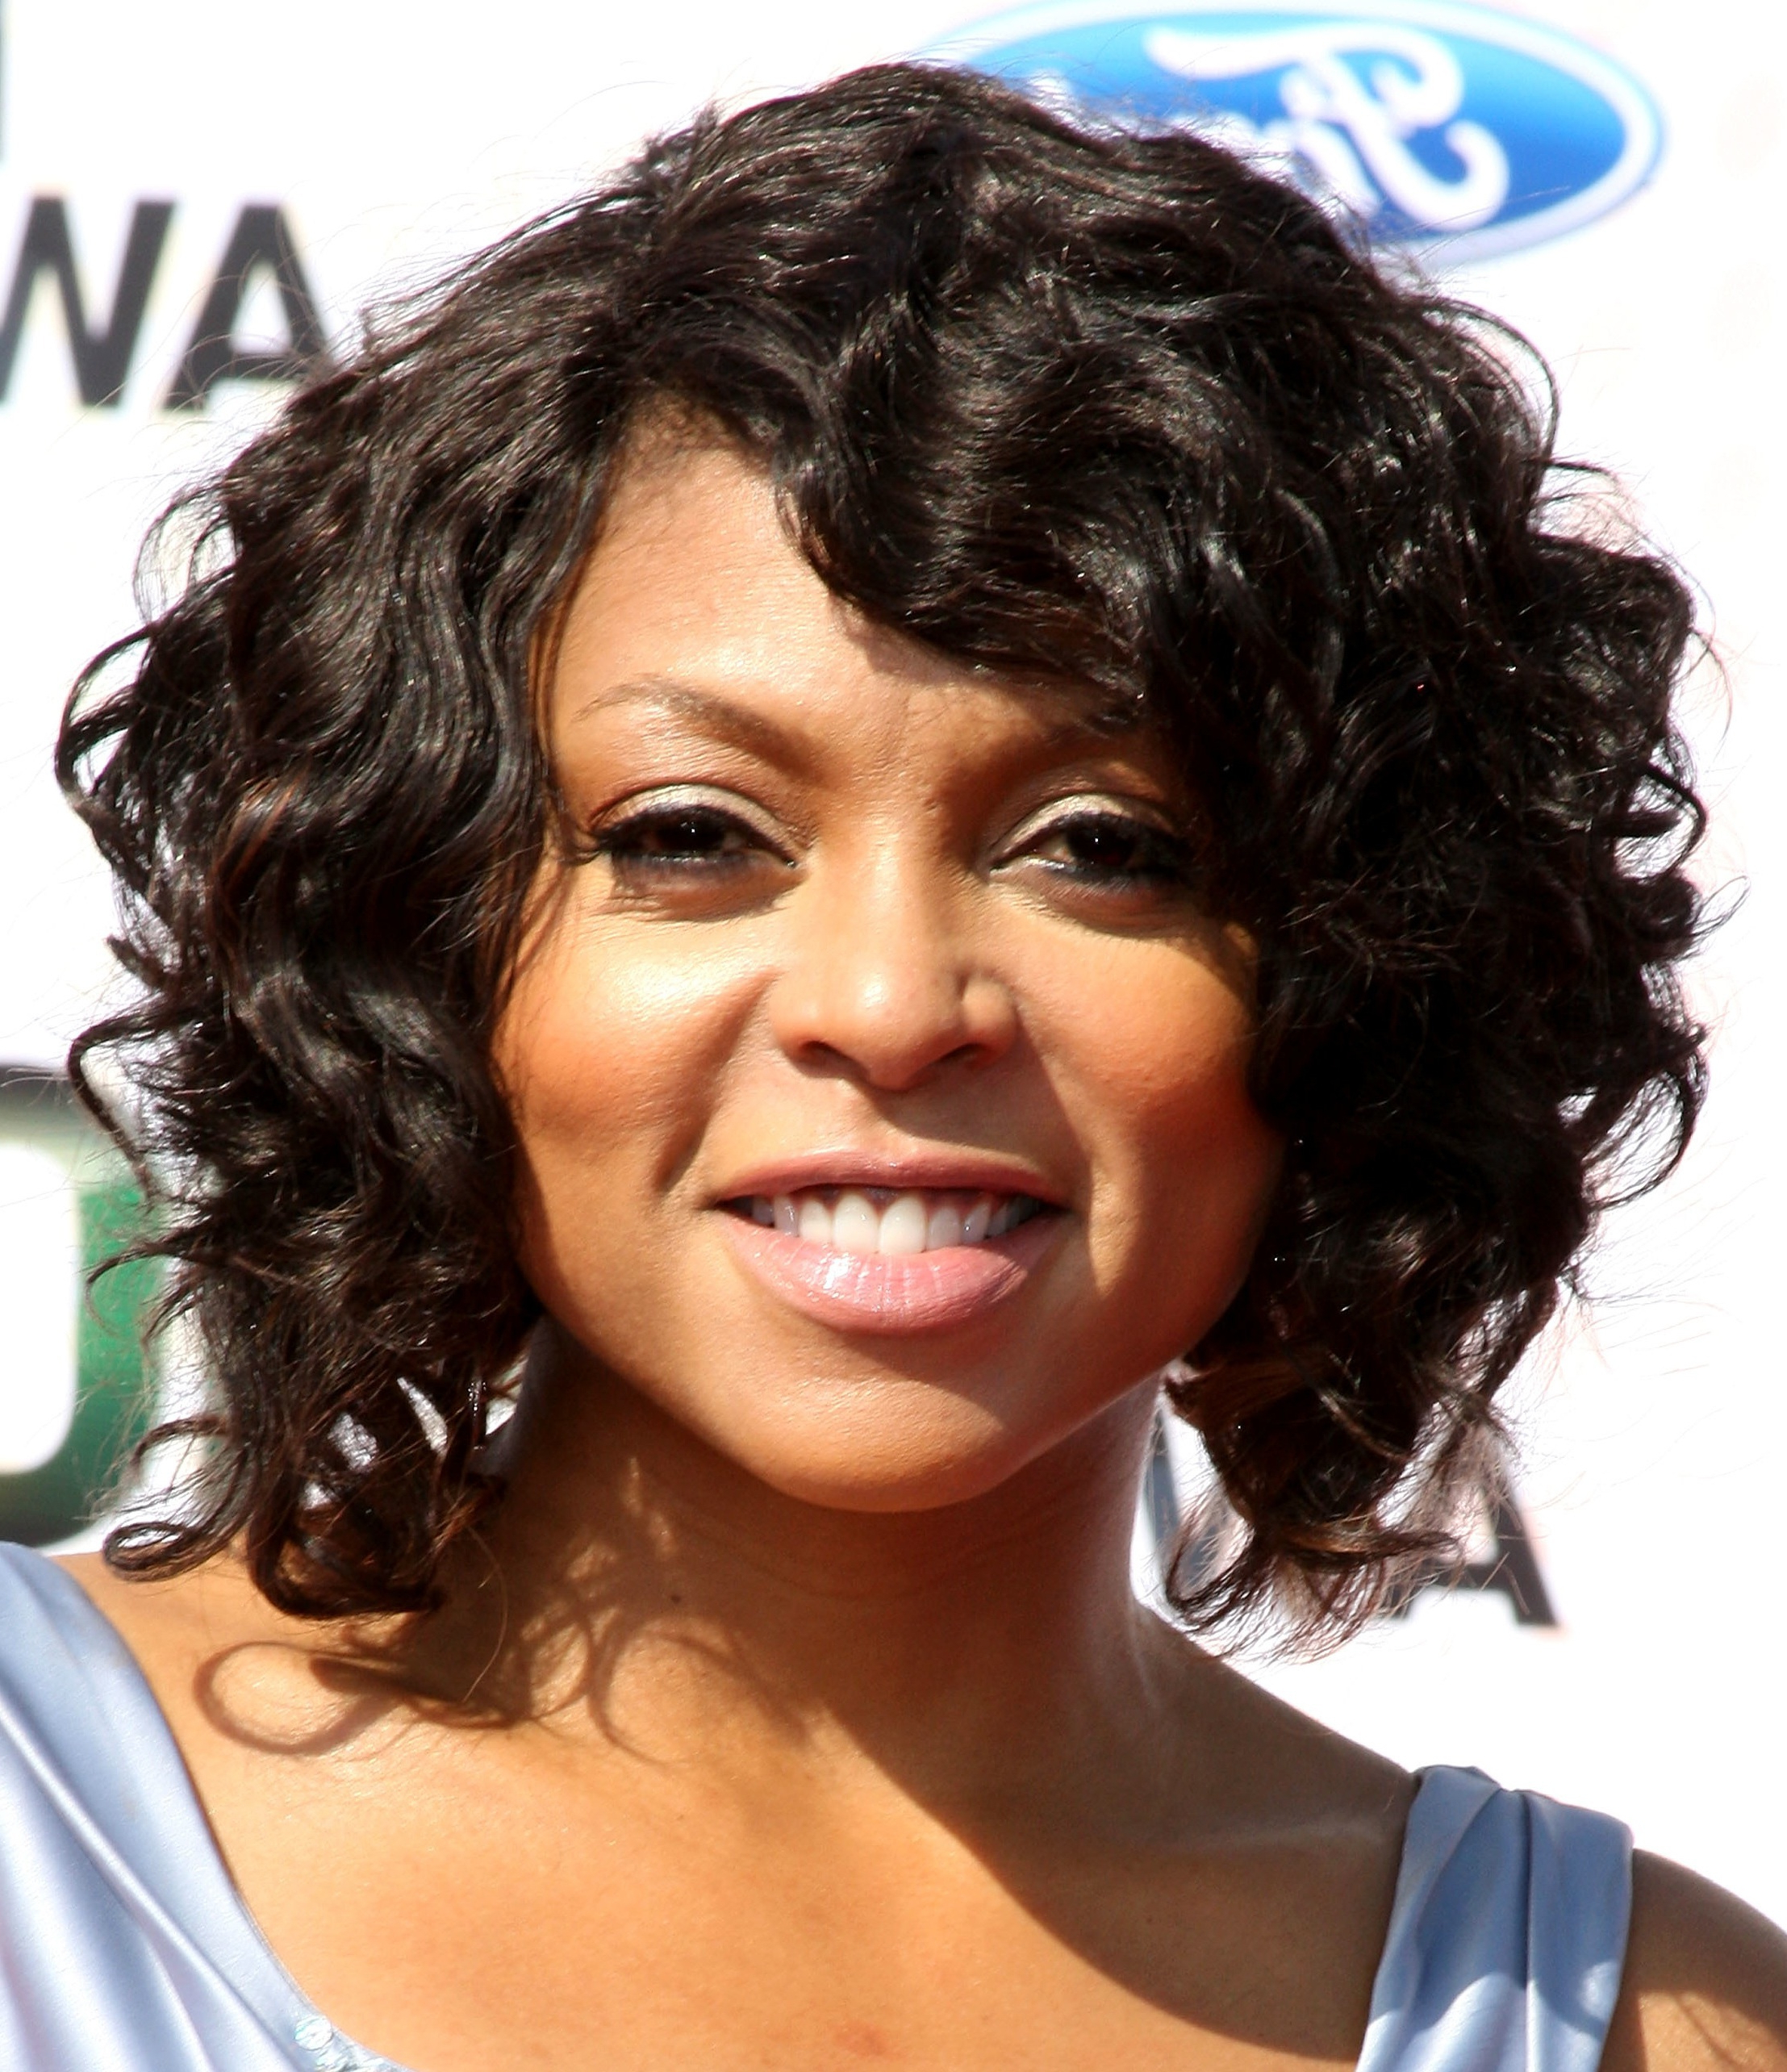 Short Curly Hairstyles For Black Women With Round Faces – Hairstyle Intended For Curly Black Short Hairstyles (View 7 of 25)